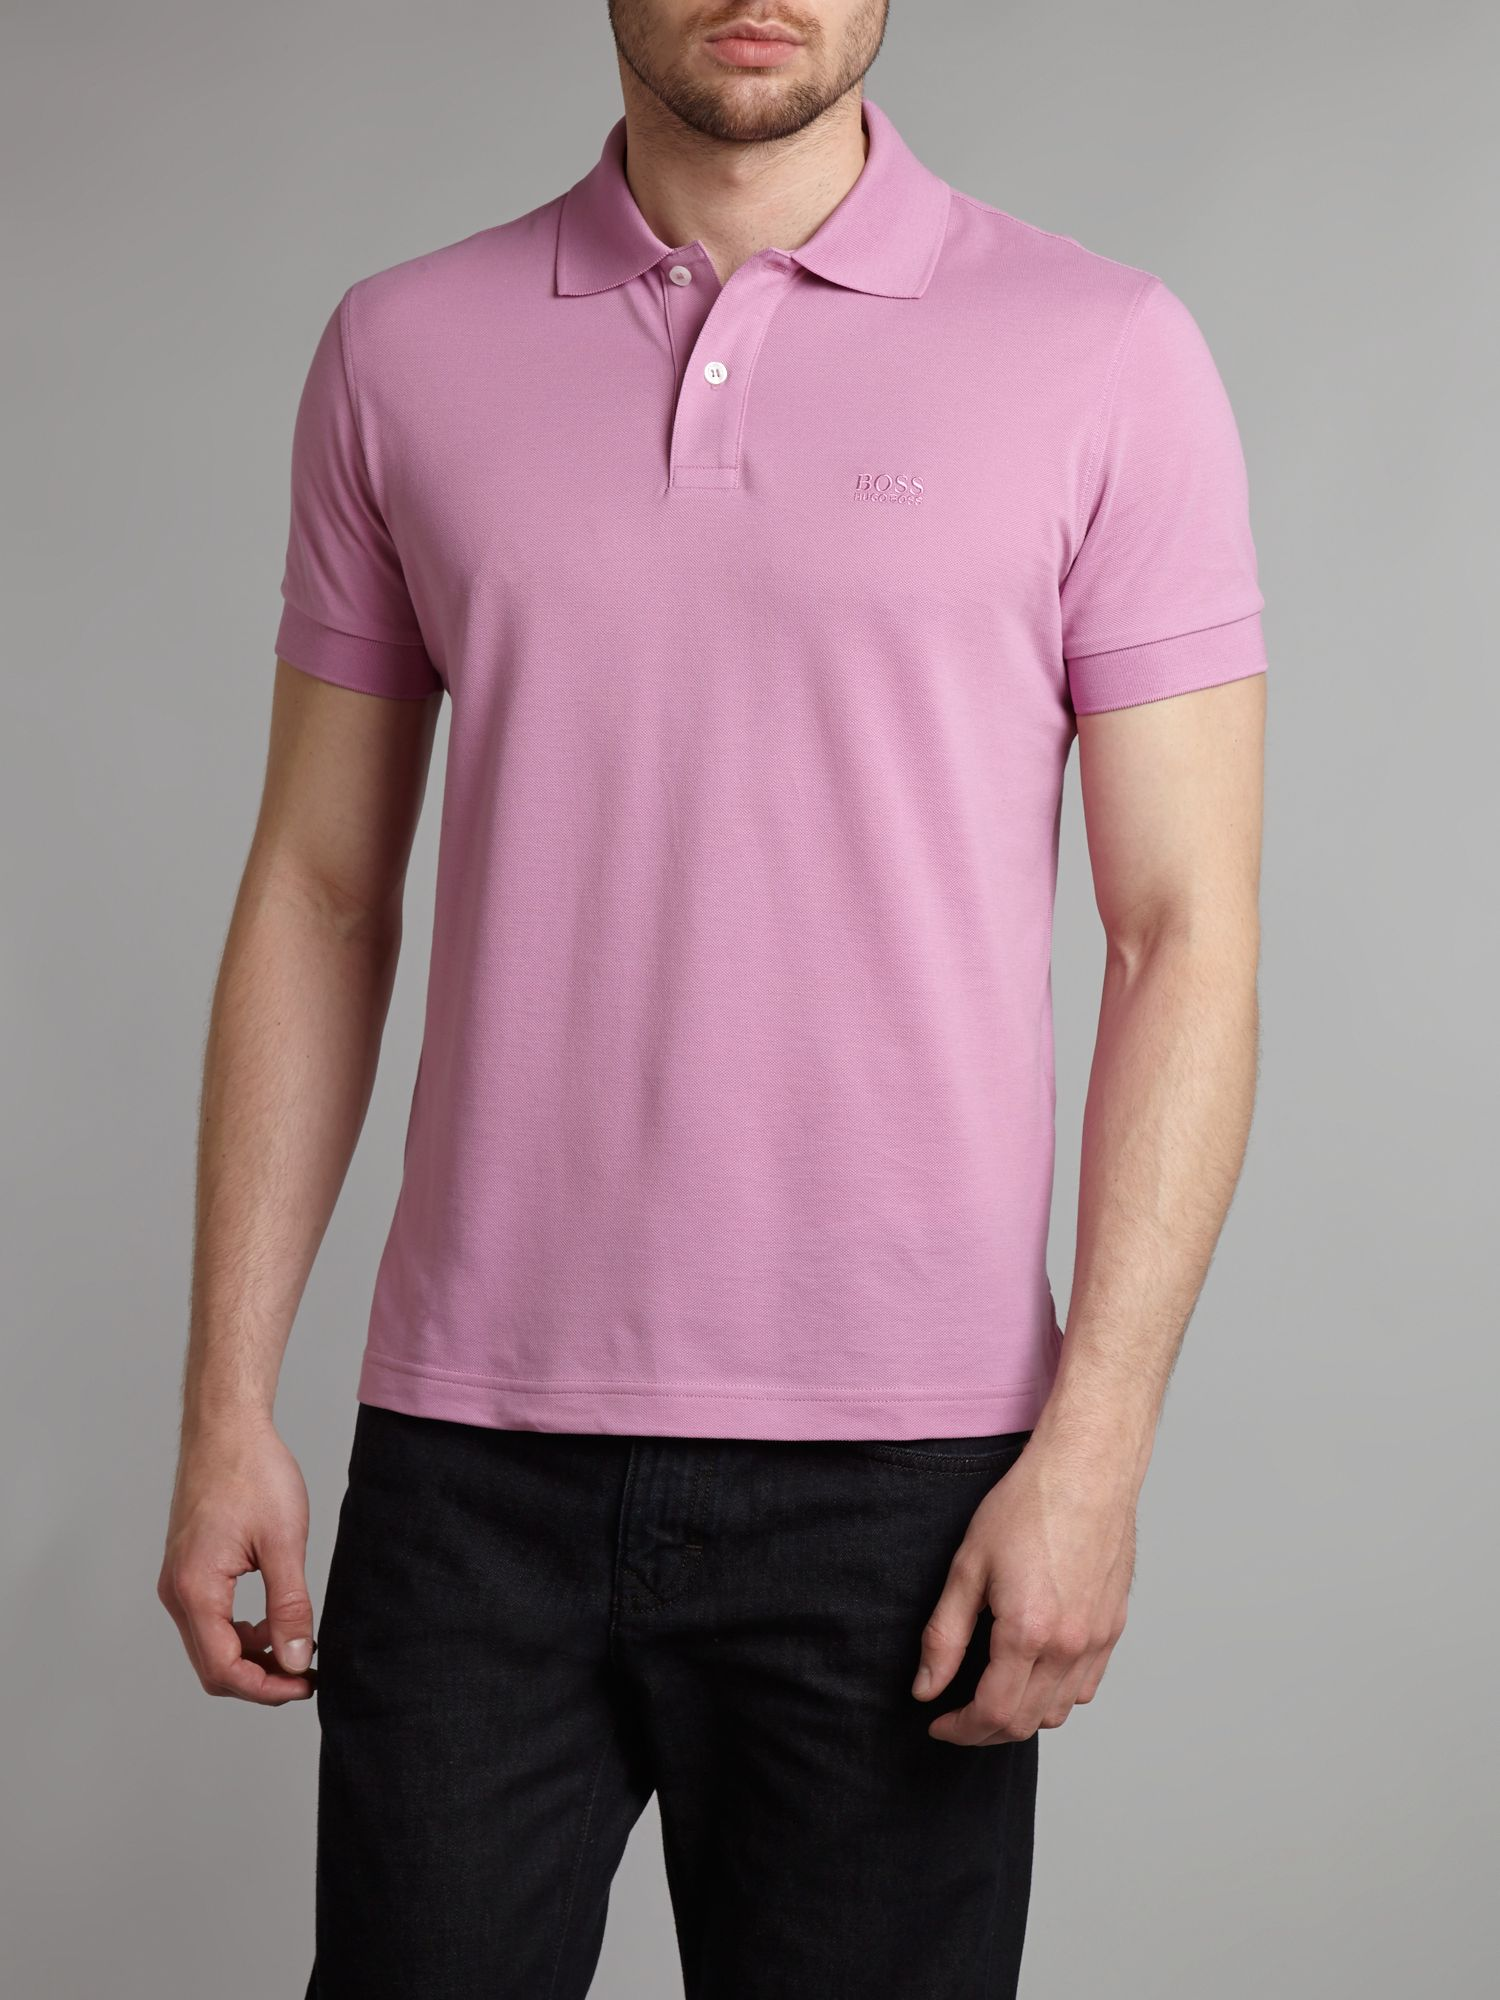 Firenze logo polo shirt